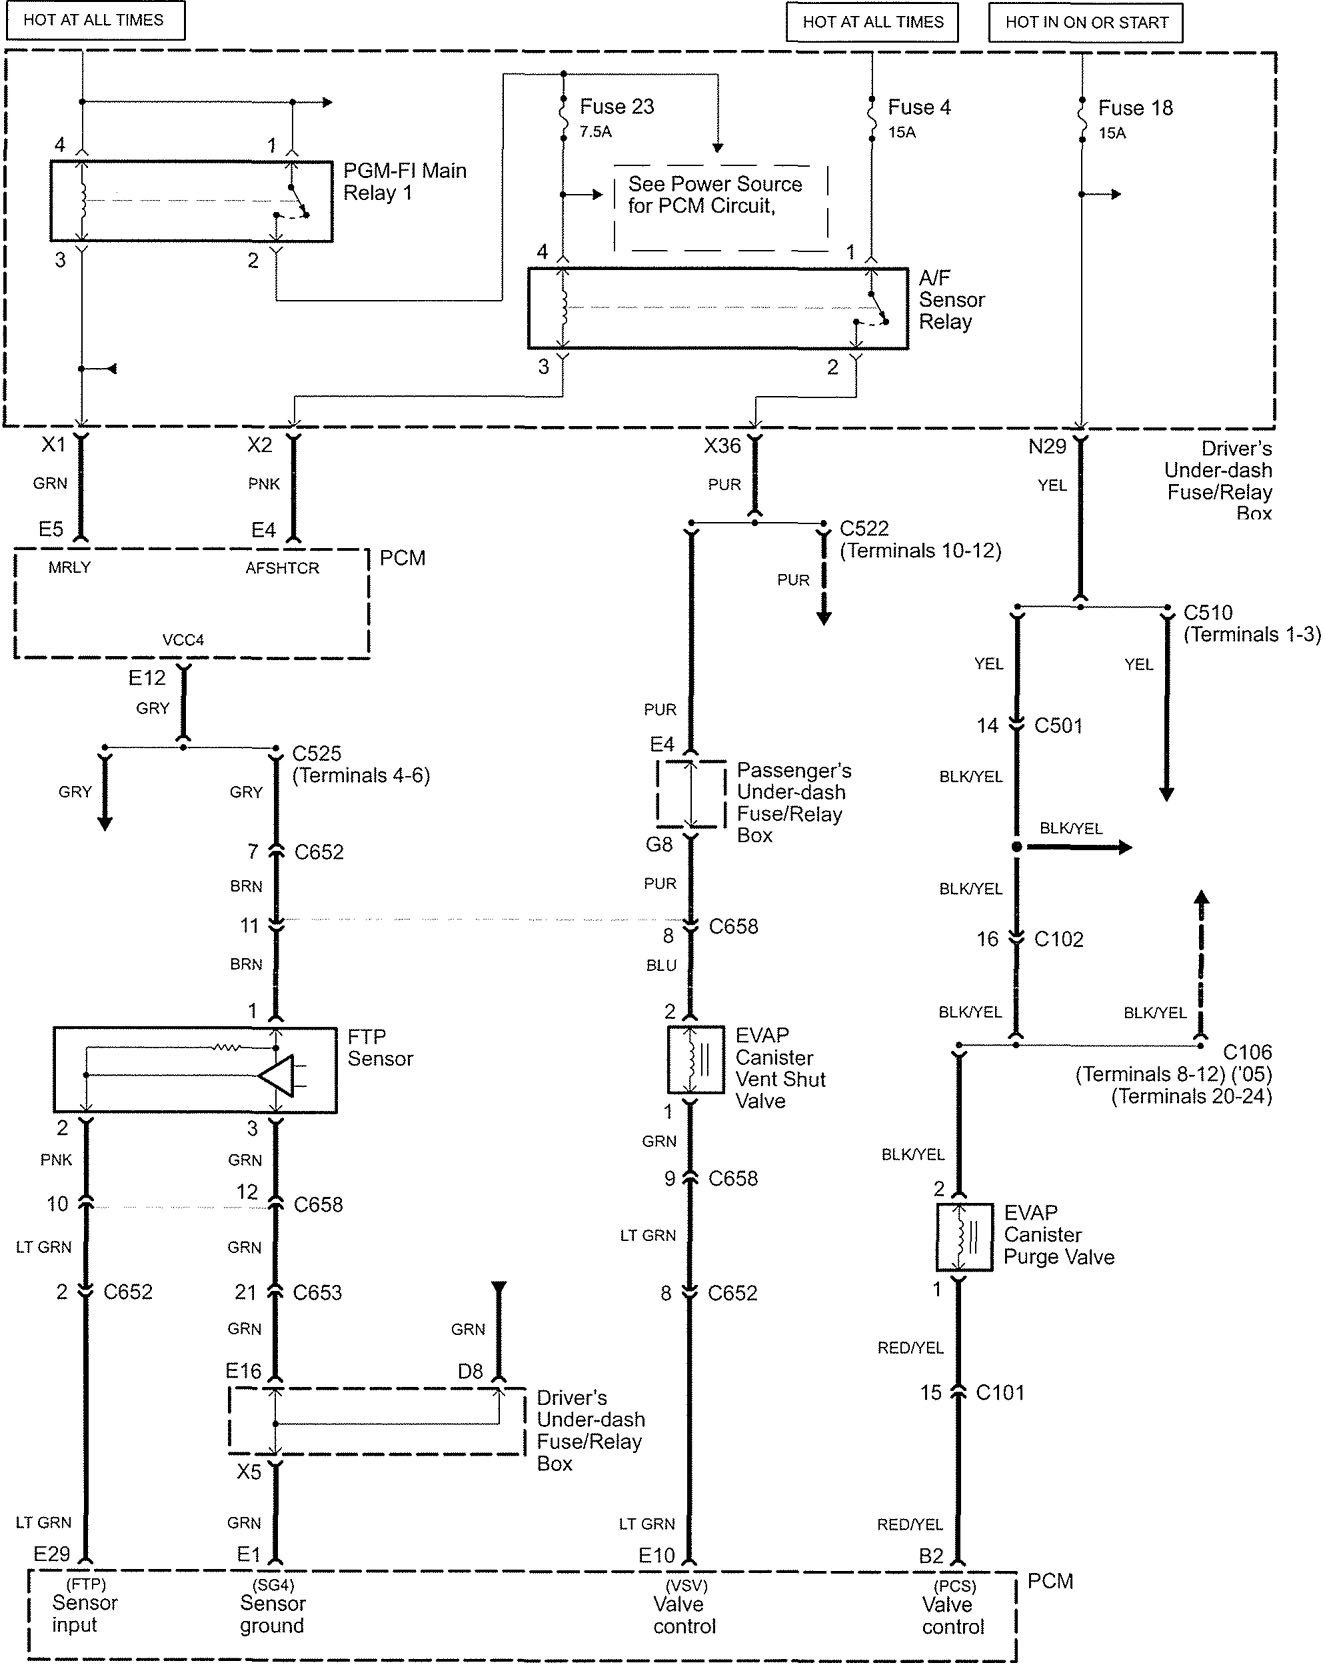 Wiring Diagram For 1991 Acura Legend Ka7 Engine Integra Radio Stereo Cadillac Seville